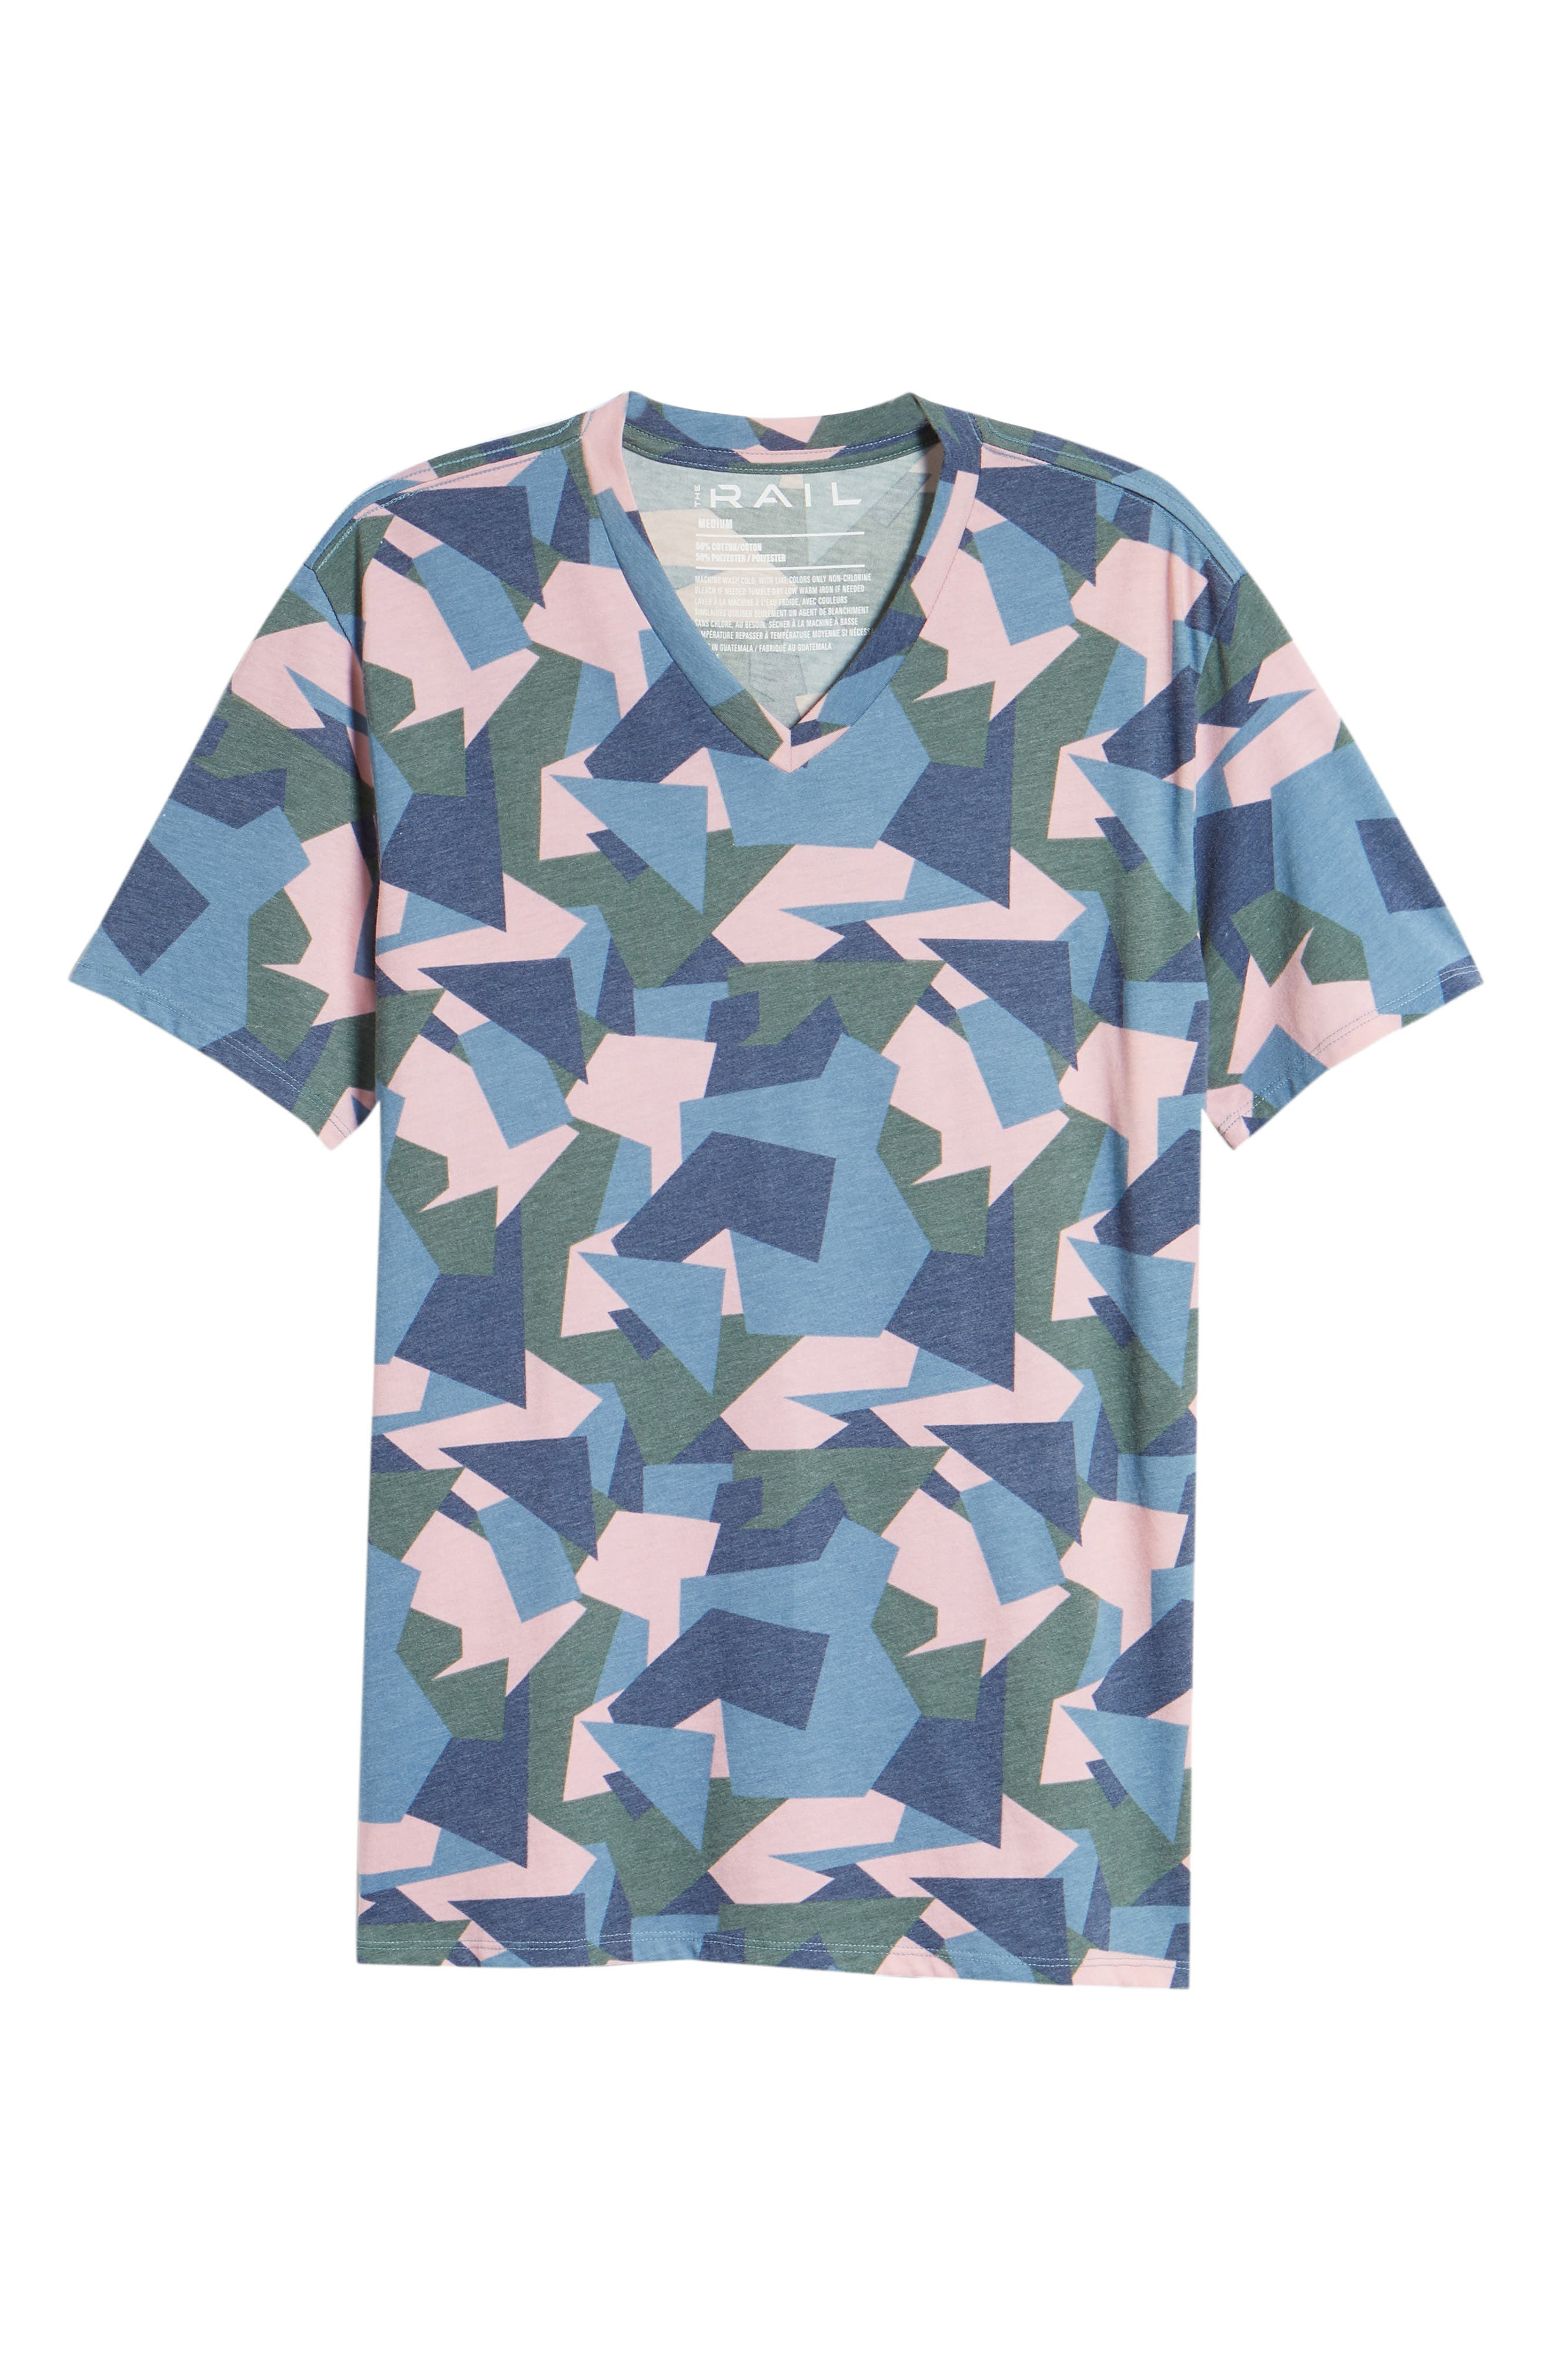 V-Neck T-Shirt,                             Alternate thumbnail 6, color,                             Pink / Grey Abstract Geo Camo